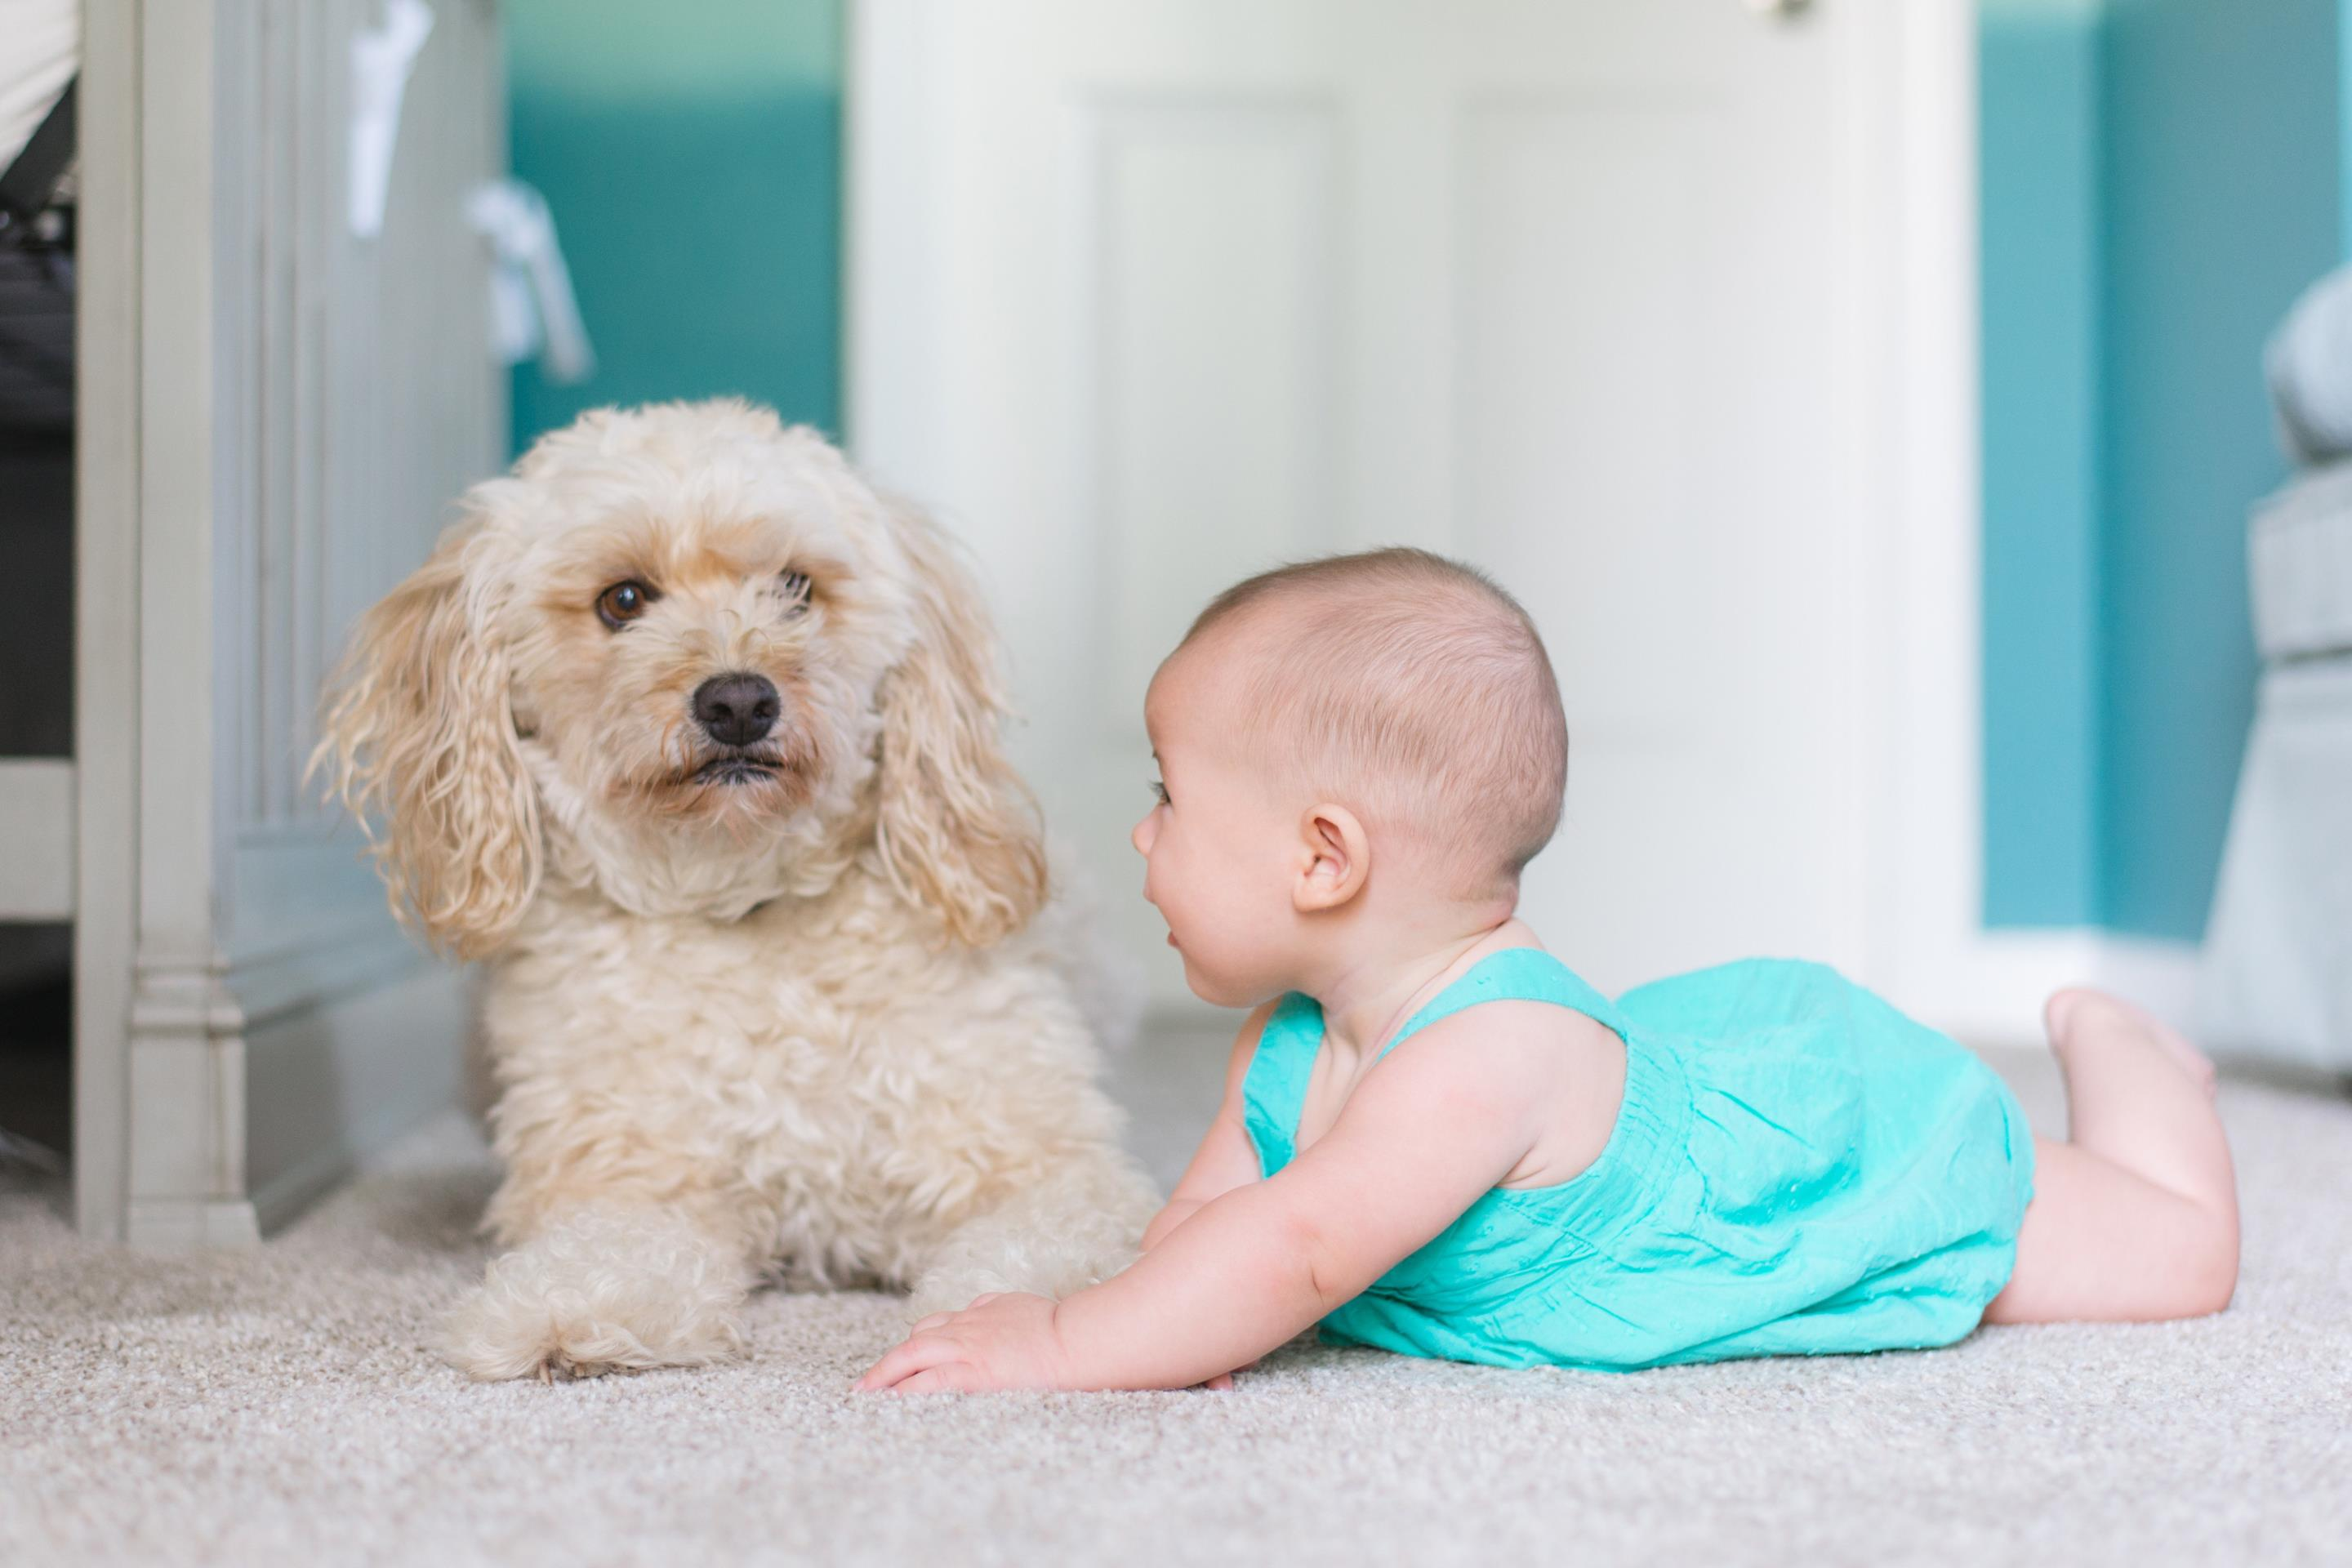 Autism & Pets: The Benefits and Options